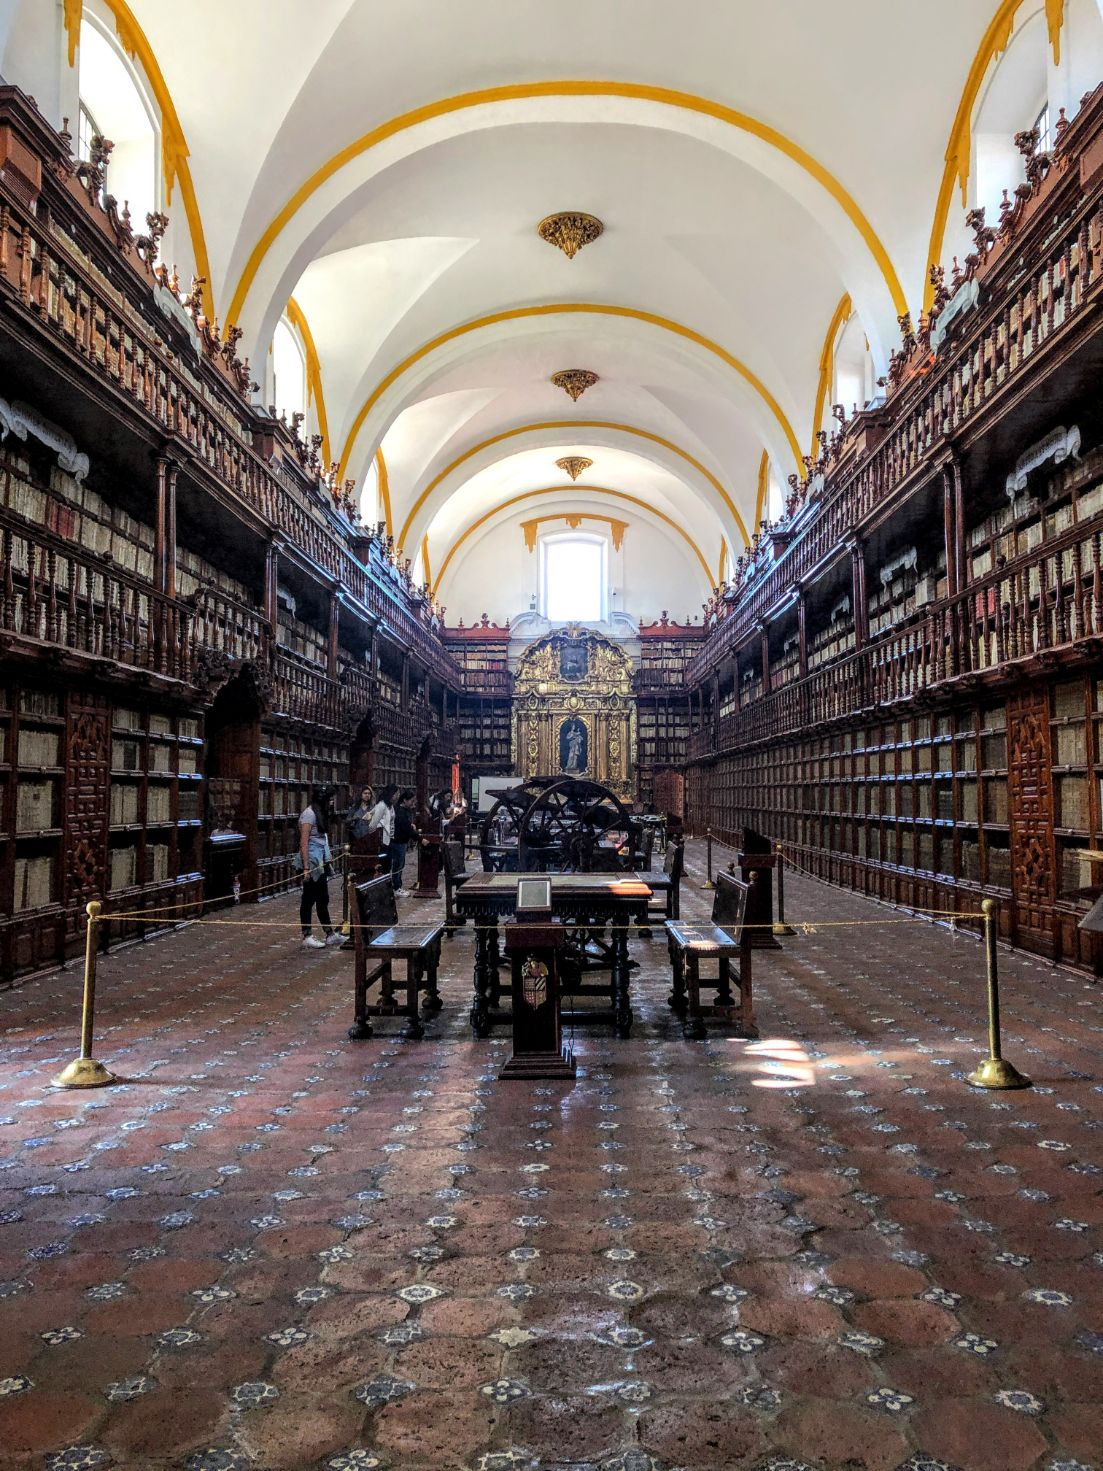 arched roof and wooden shelves lined with books in Biblioteca Palafoxiana